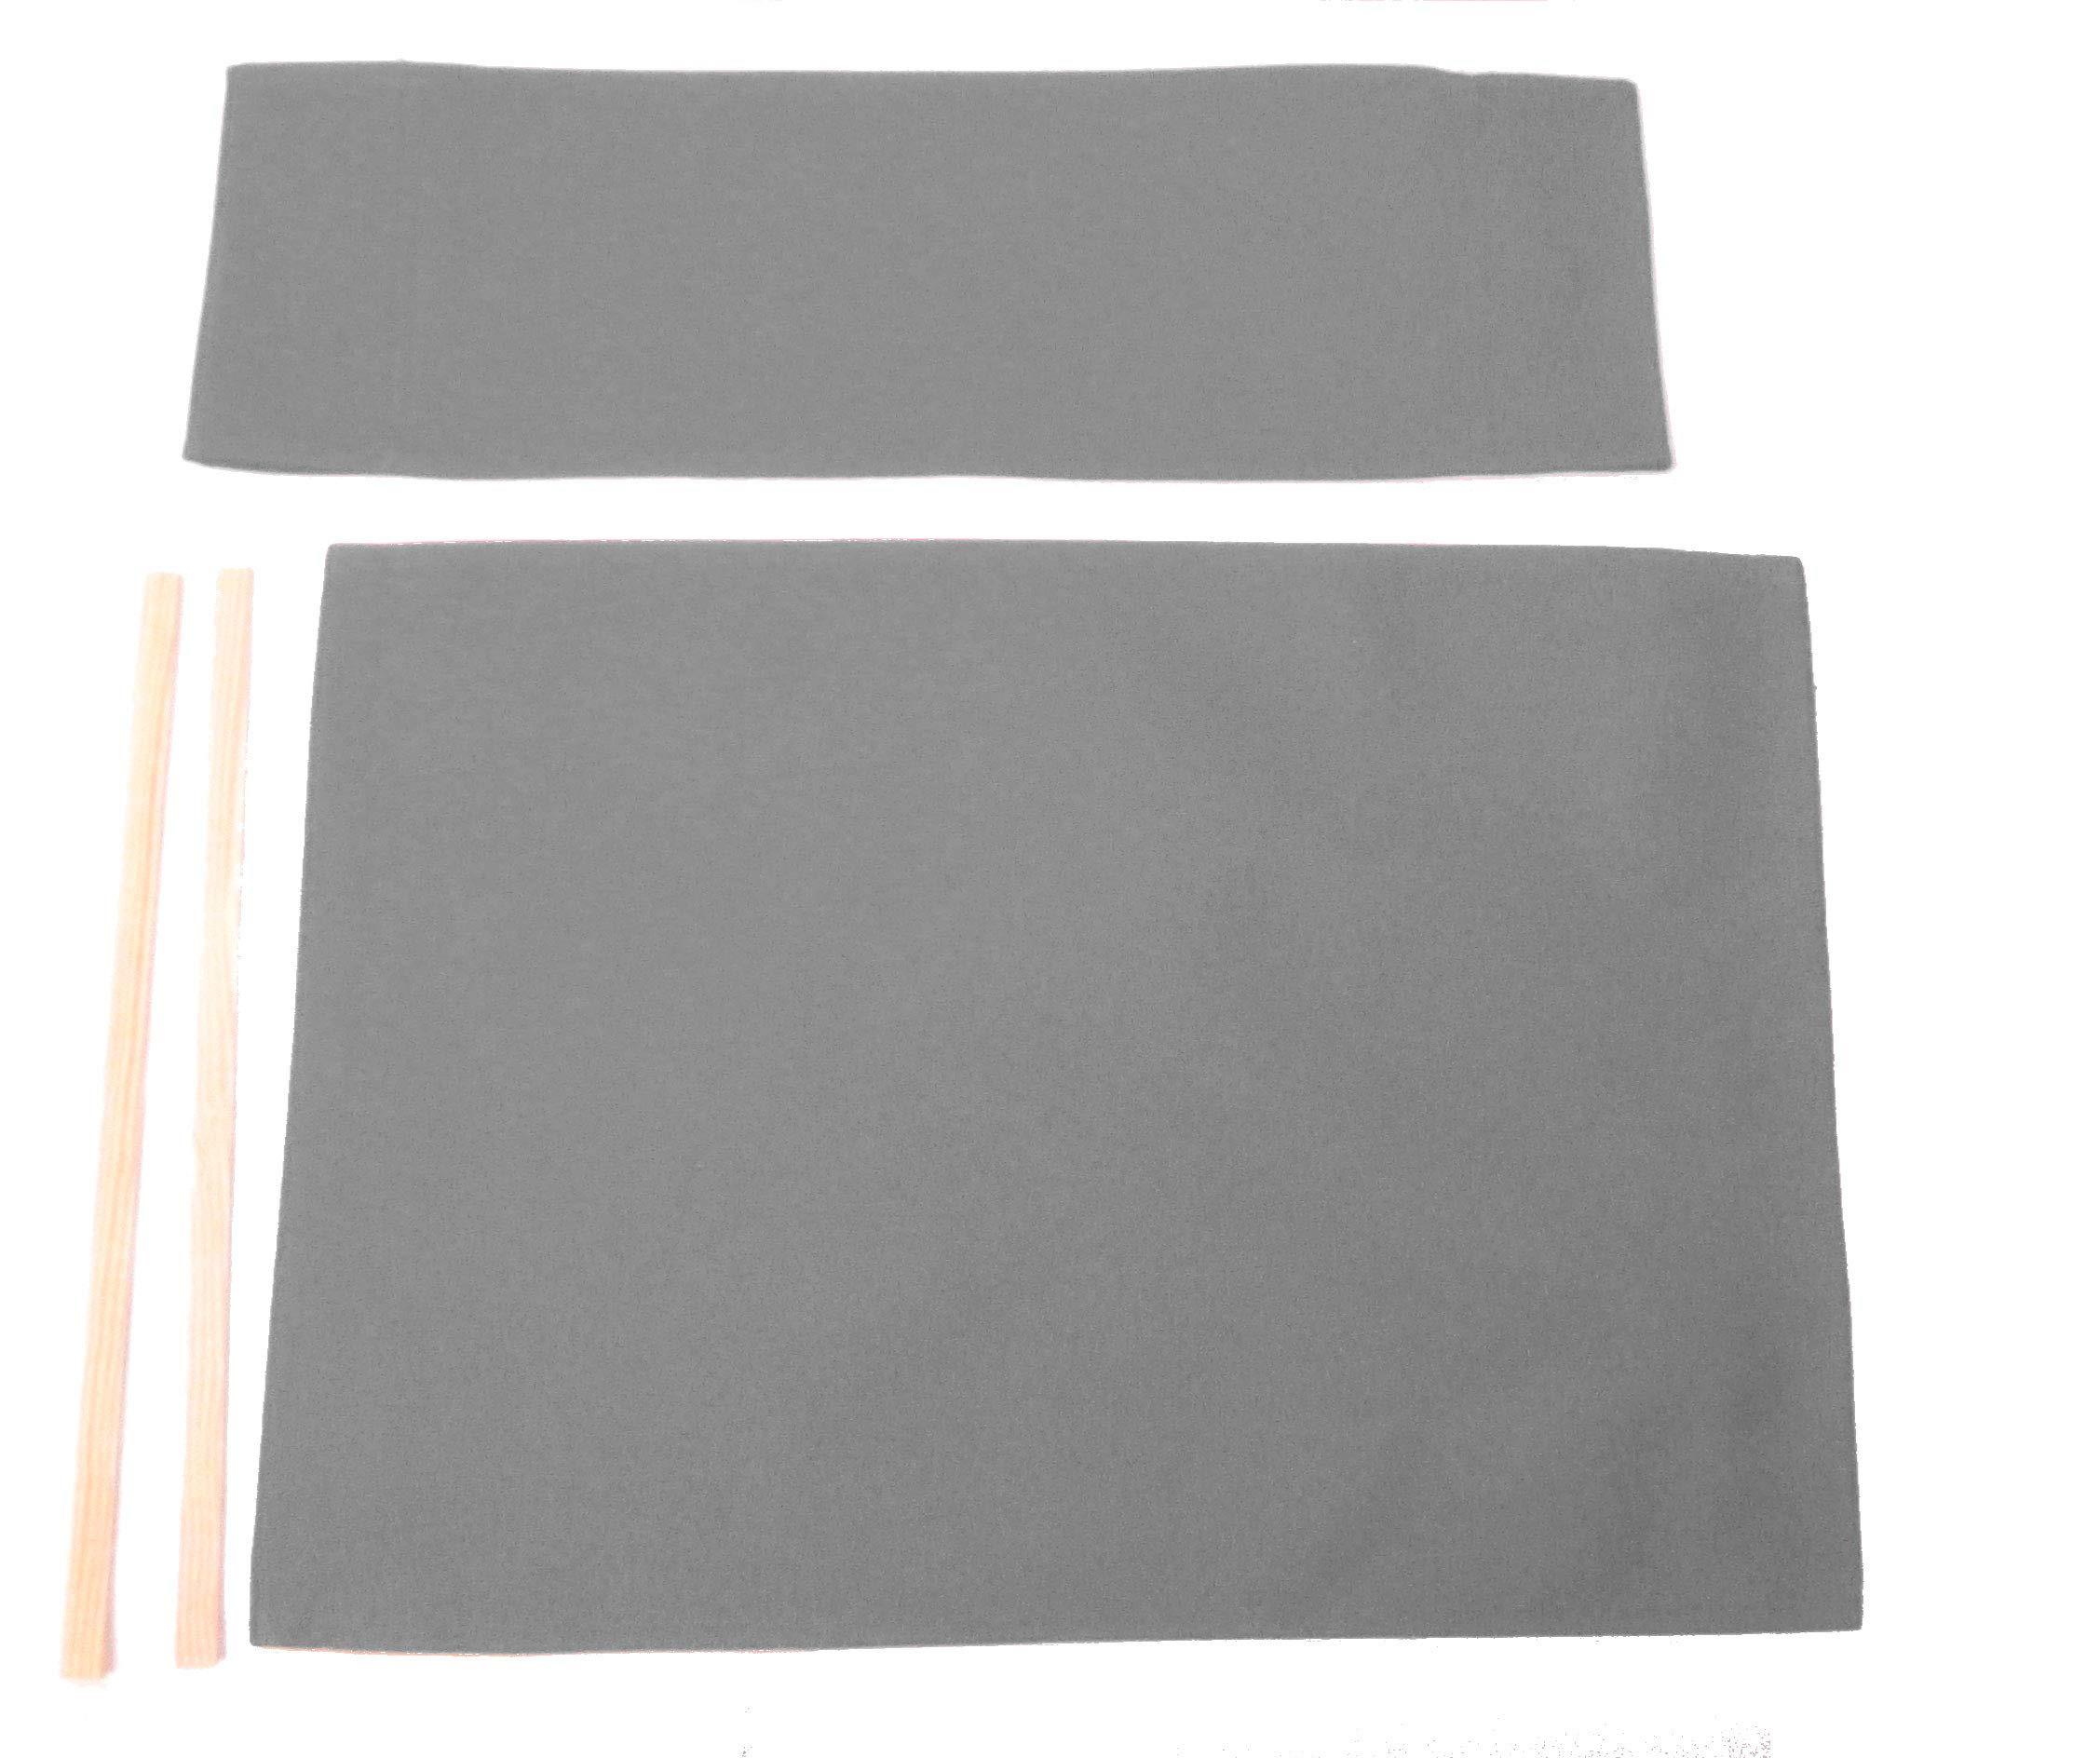 Replacement Cover Canvas for Director's Chair (Flat Stick) (Grey) by Everywhere Chair